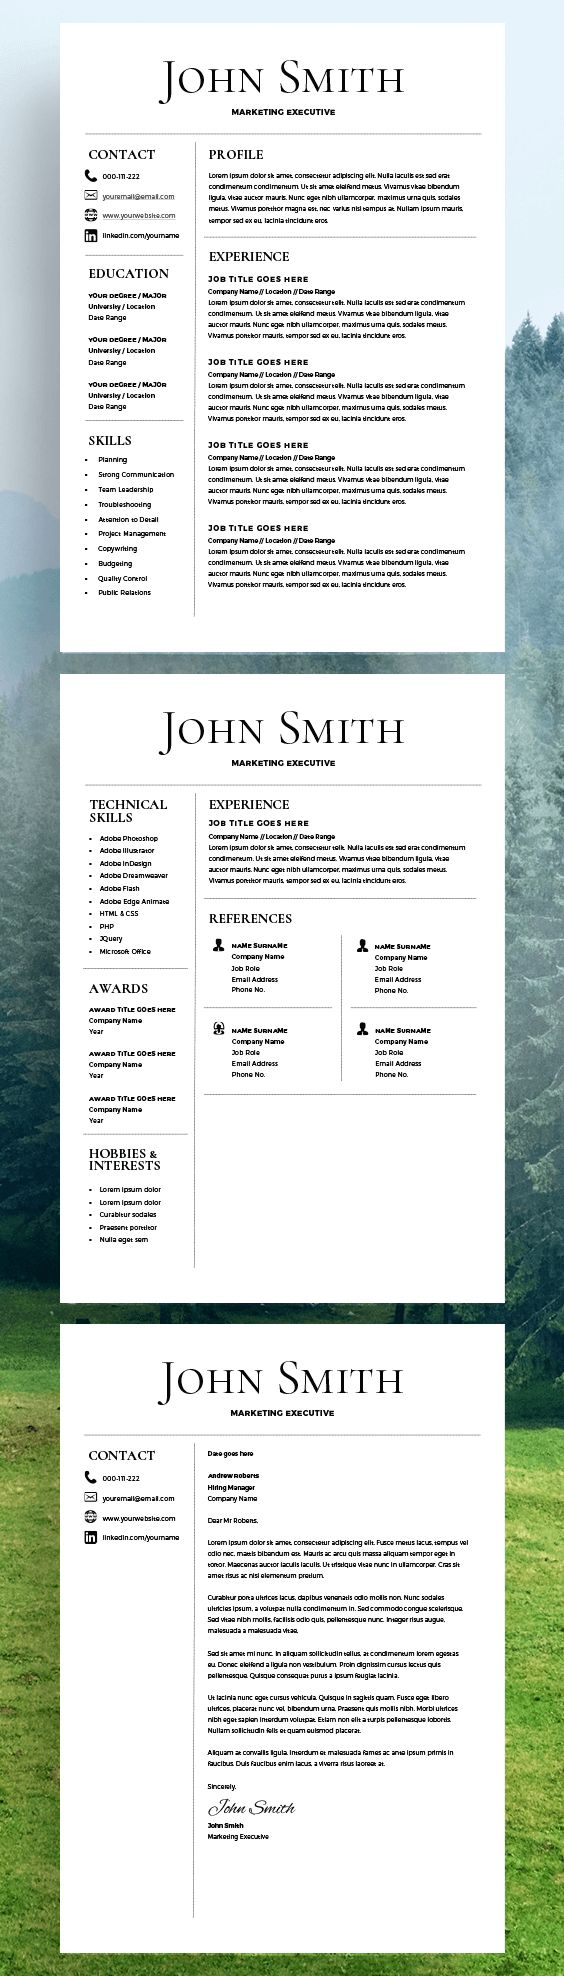 resume template cv template free cover letter ms word on mac pc